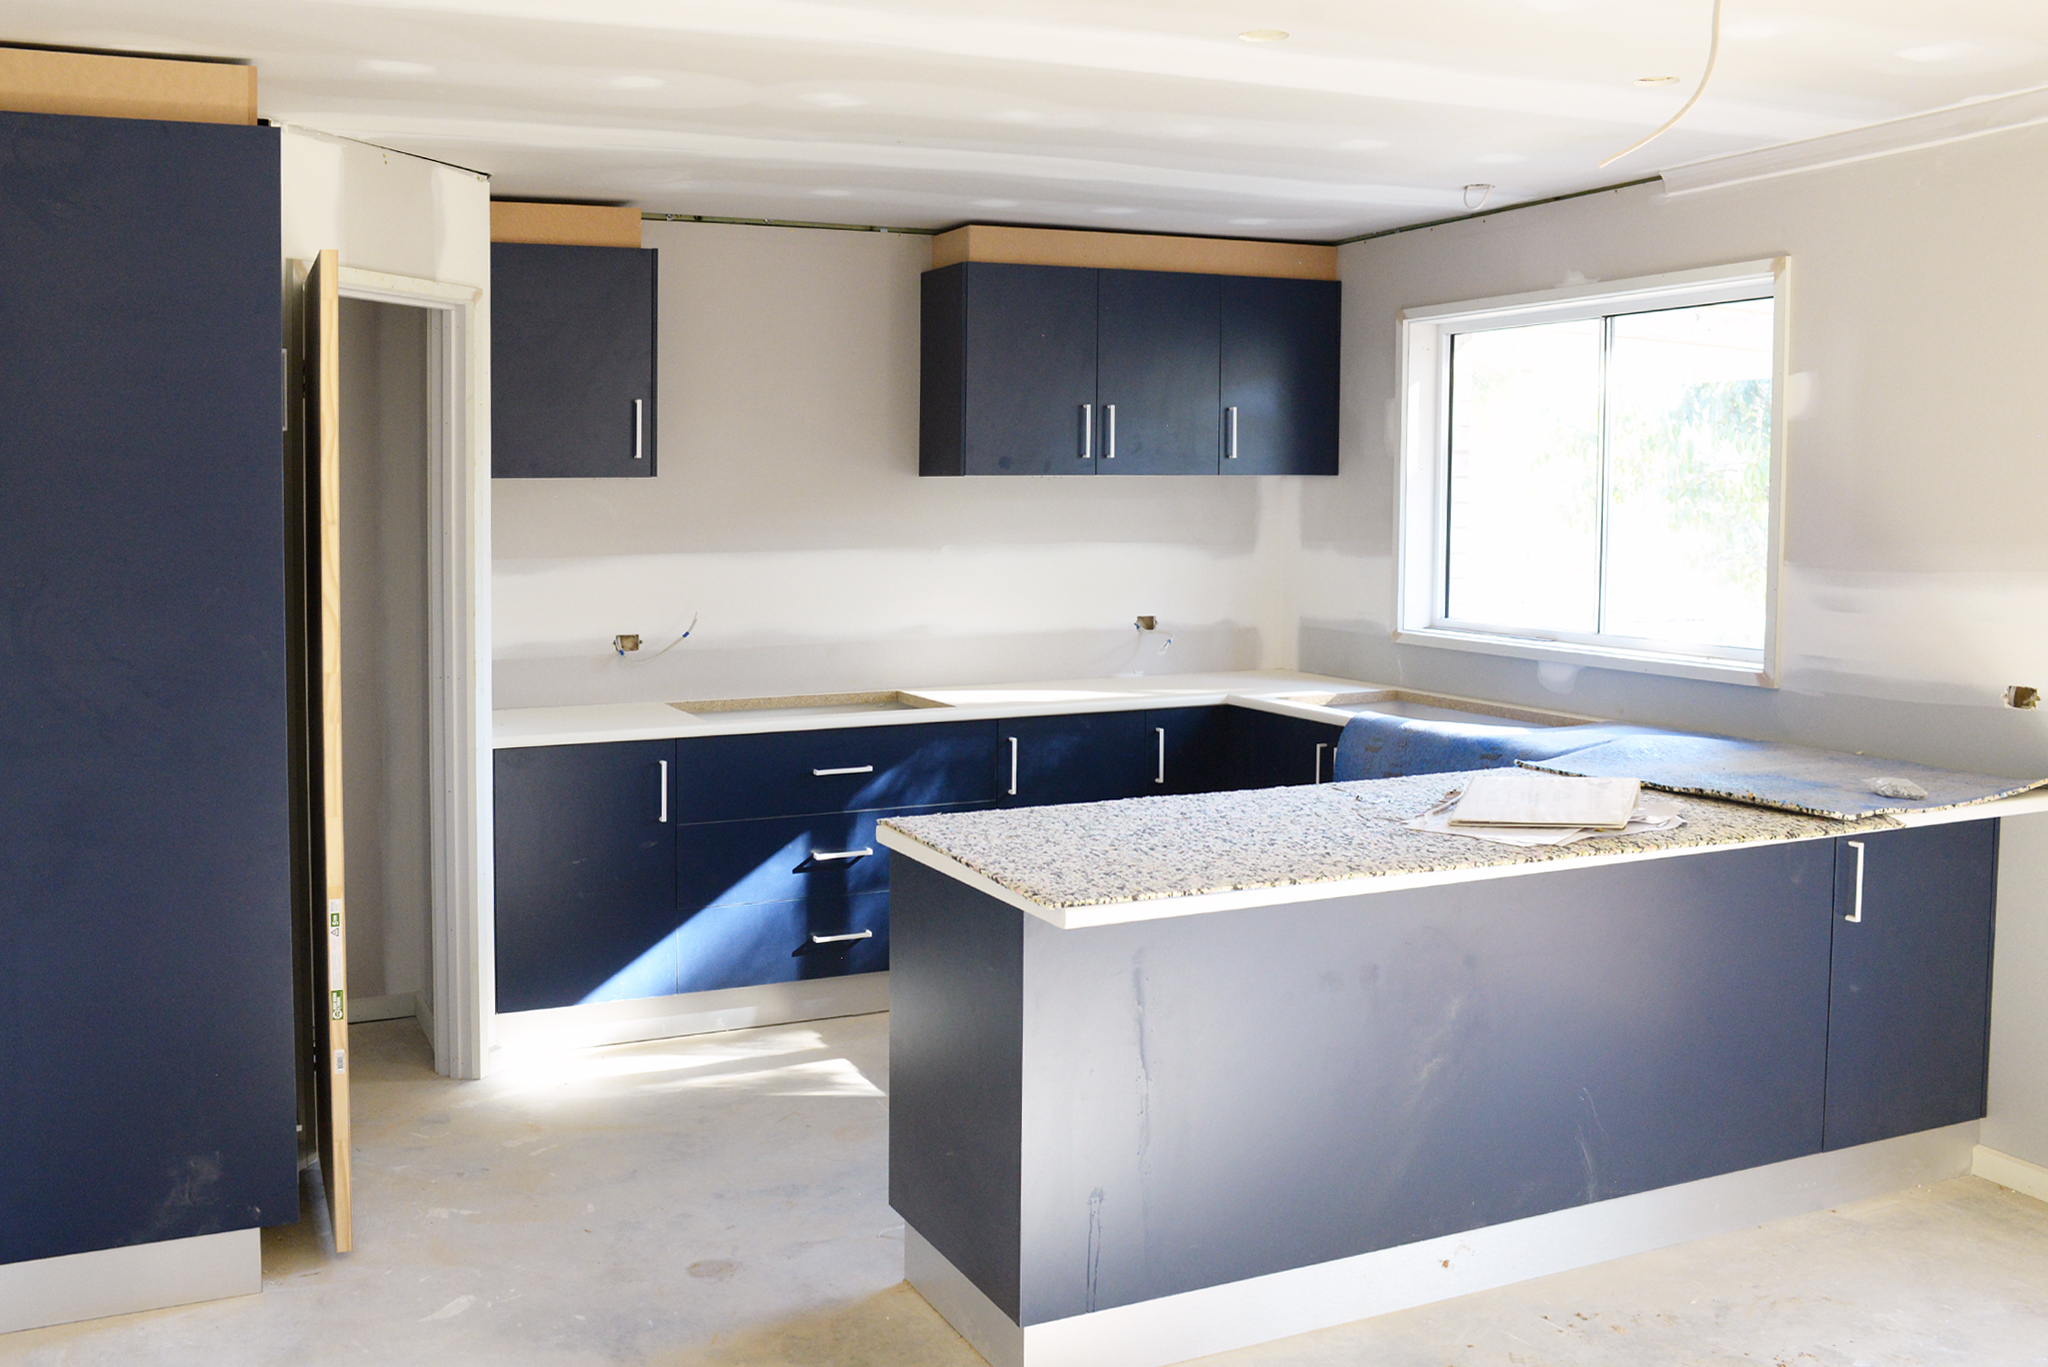 These dark blue cabinets are looking pretty striking.